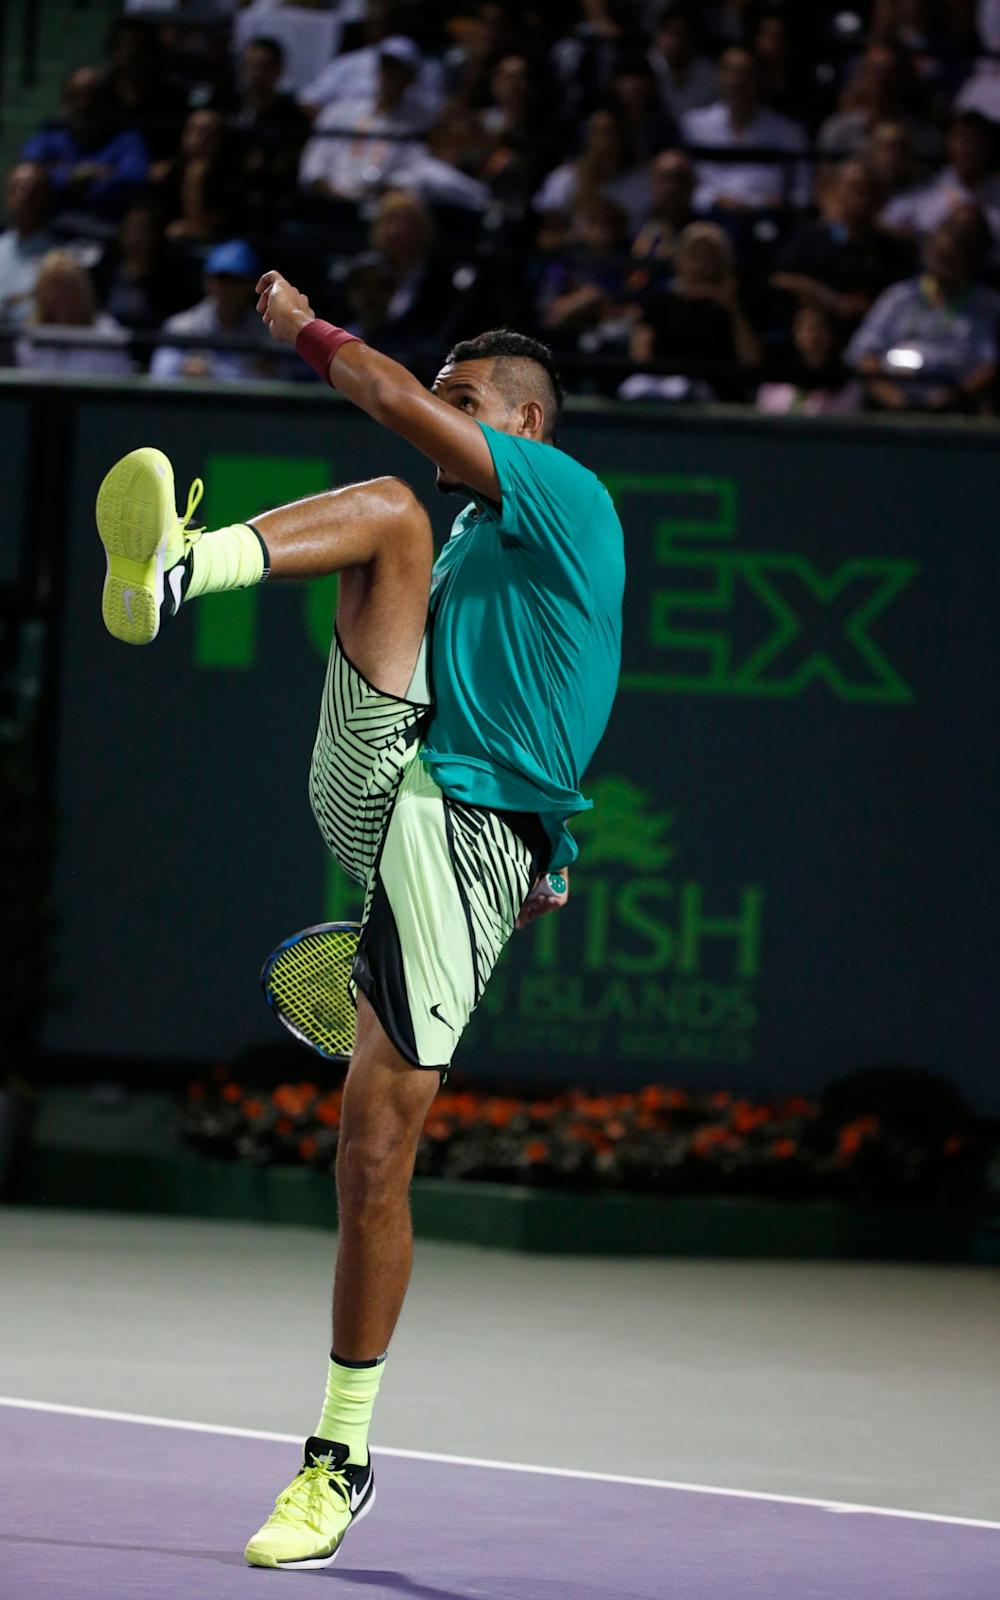 The moment when Nick Kyrgios kicks the ball away in frustration - drawing jeers from the crowd - Credit: AP